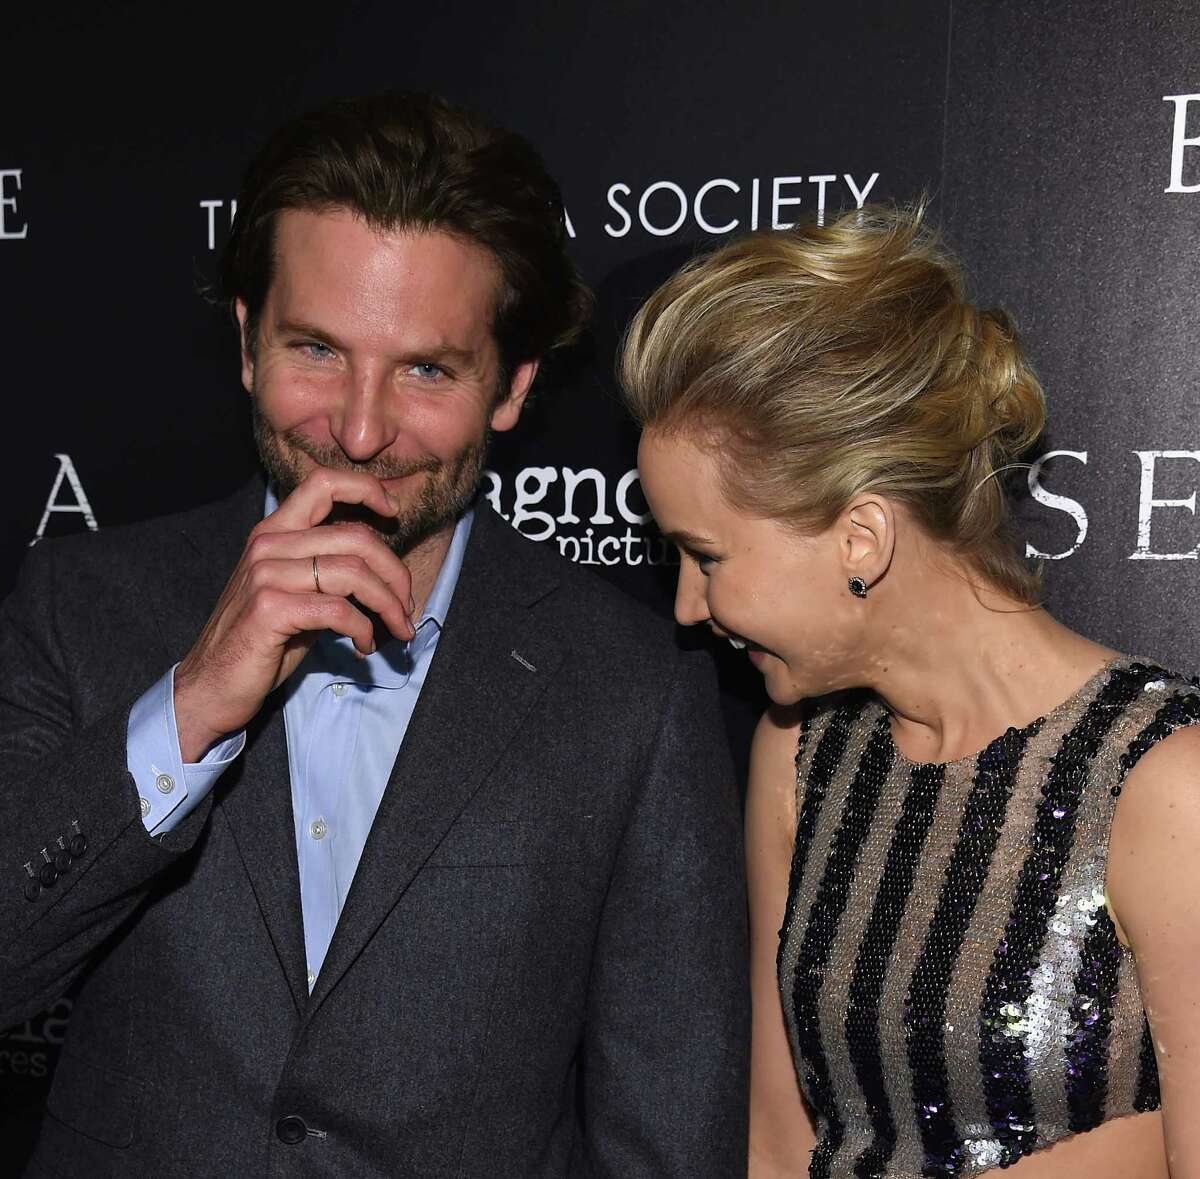 Bradley Cooper and Jennifer Lawrence No wonder they pair so well together on the screen. Their chemistry is amazing.